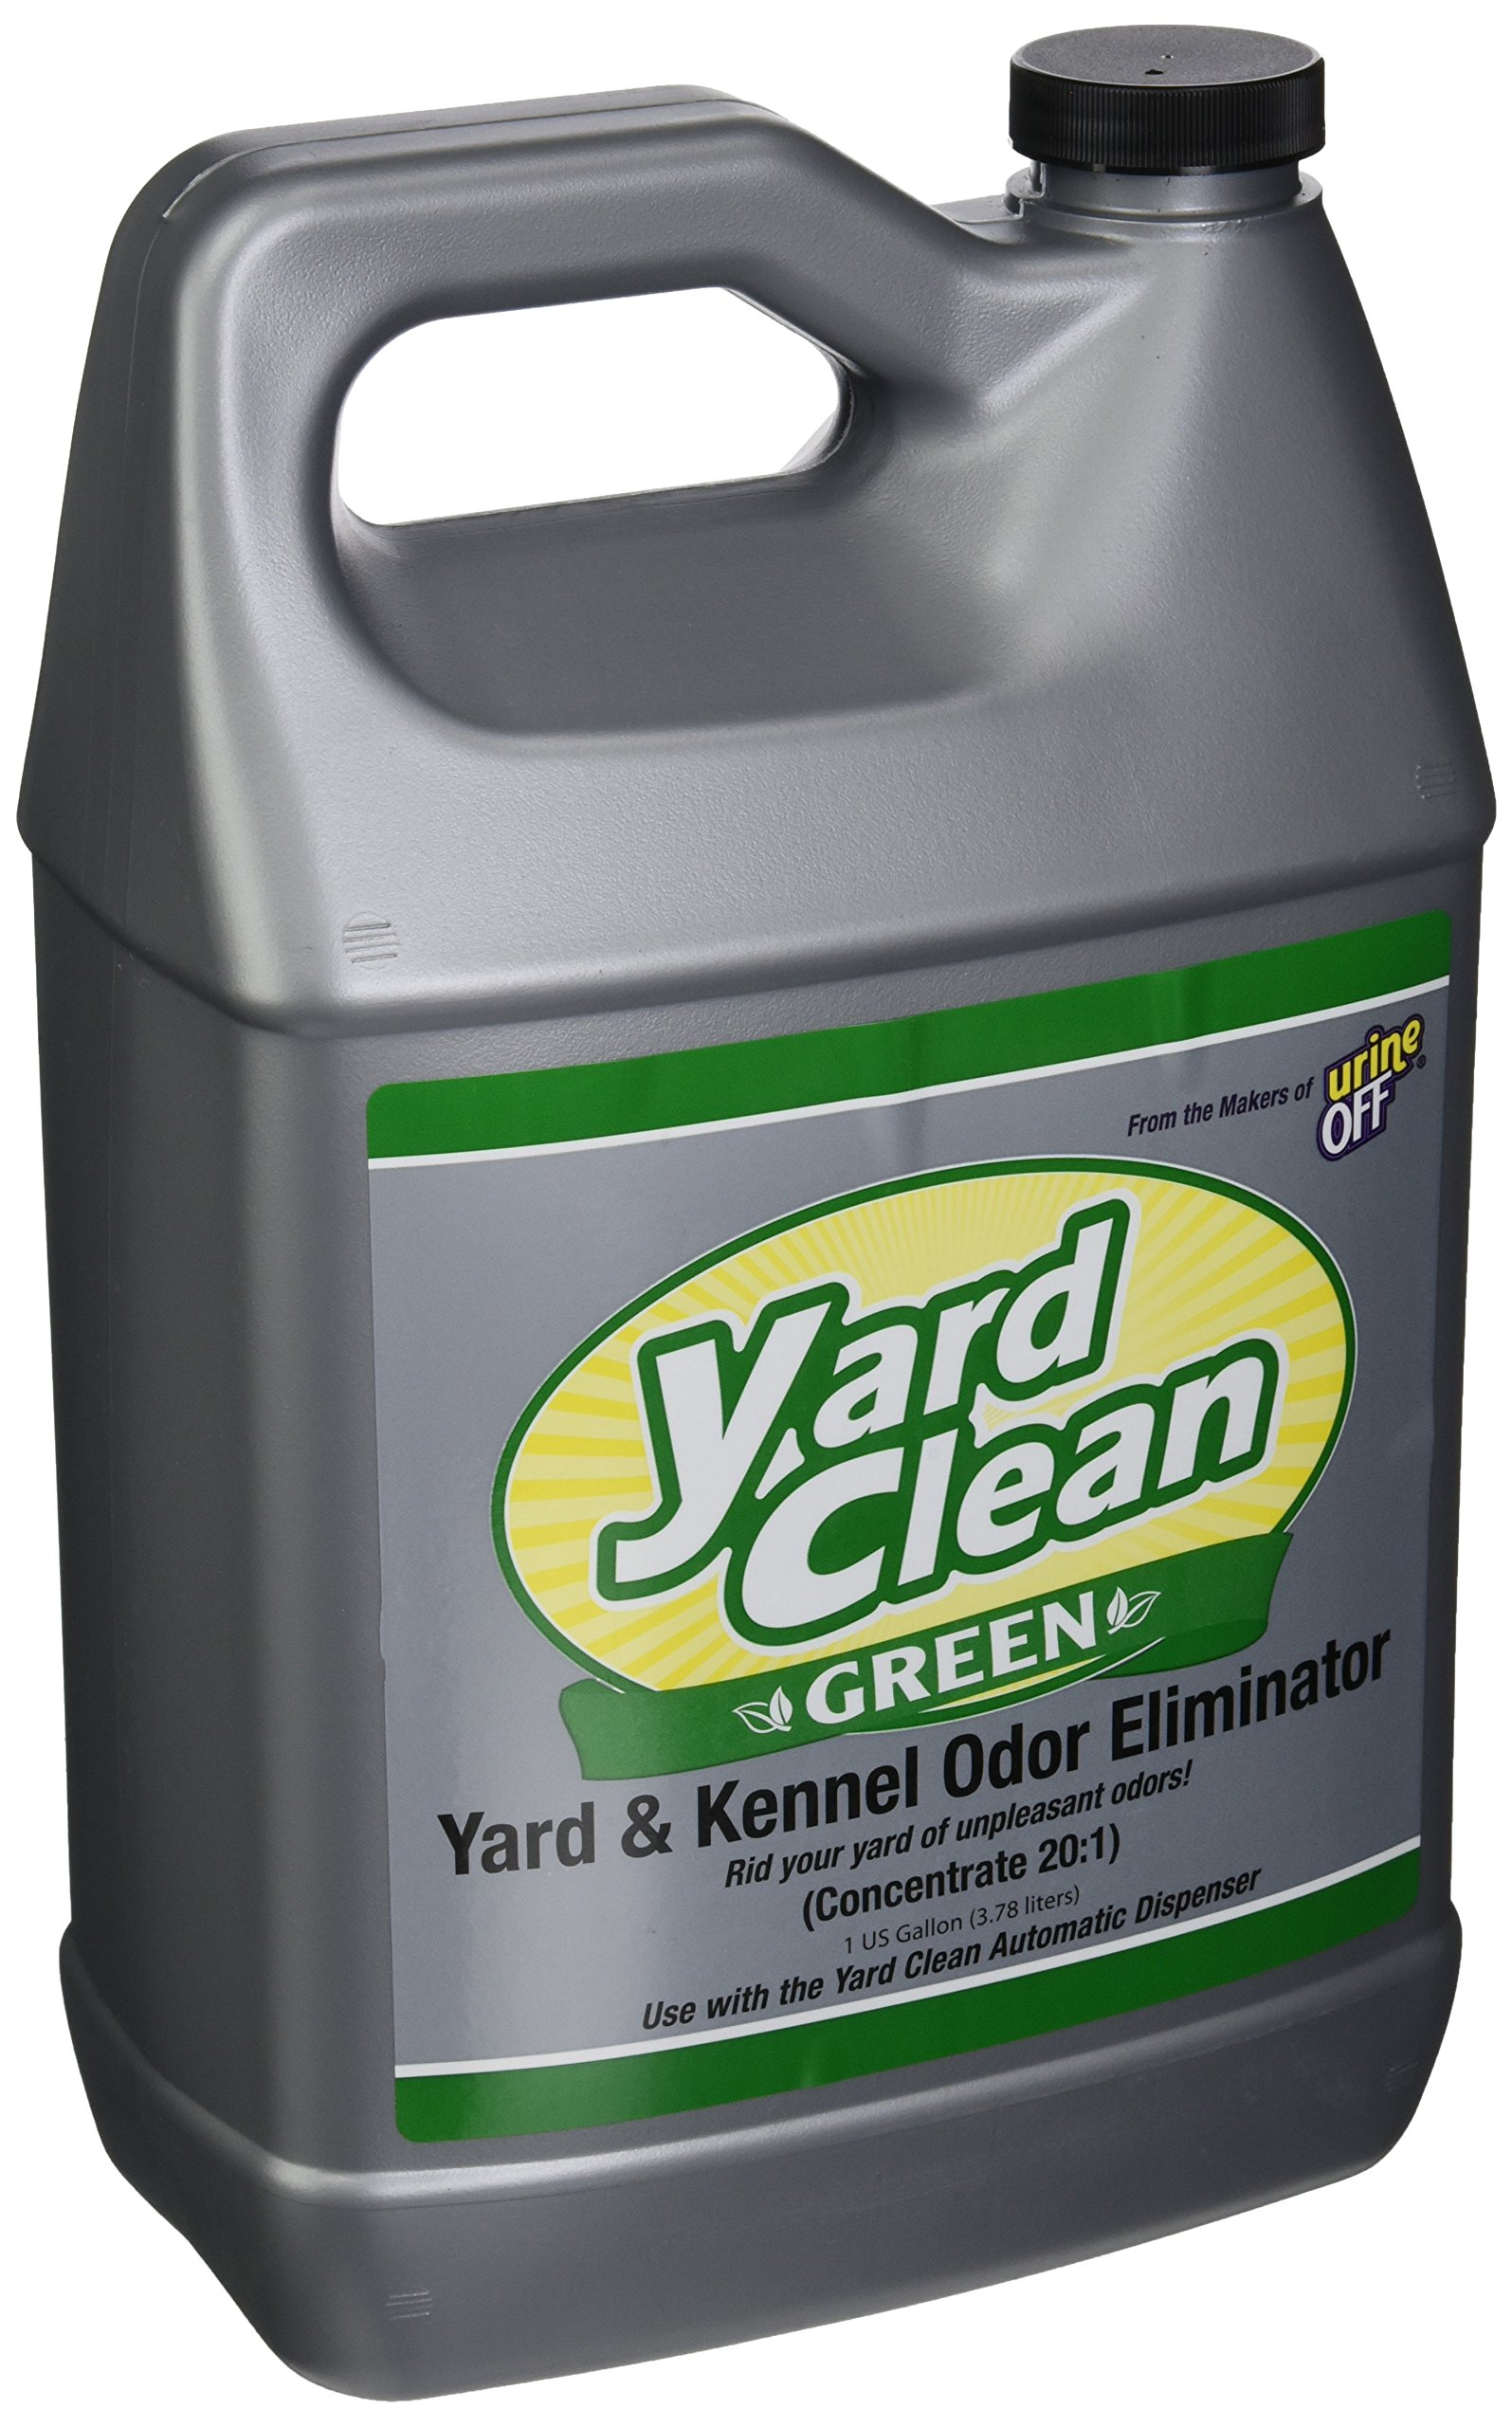 Urine Off BU1029 20:1 Concentrate 1 Gallon Clean Green(TM) Yard and Kenner Odor Eliminator